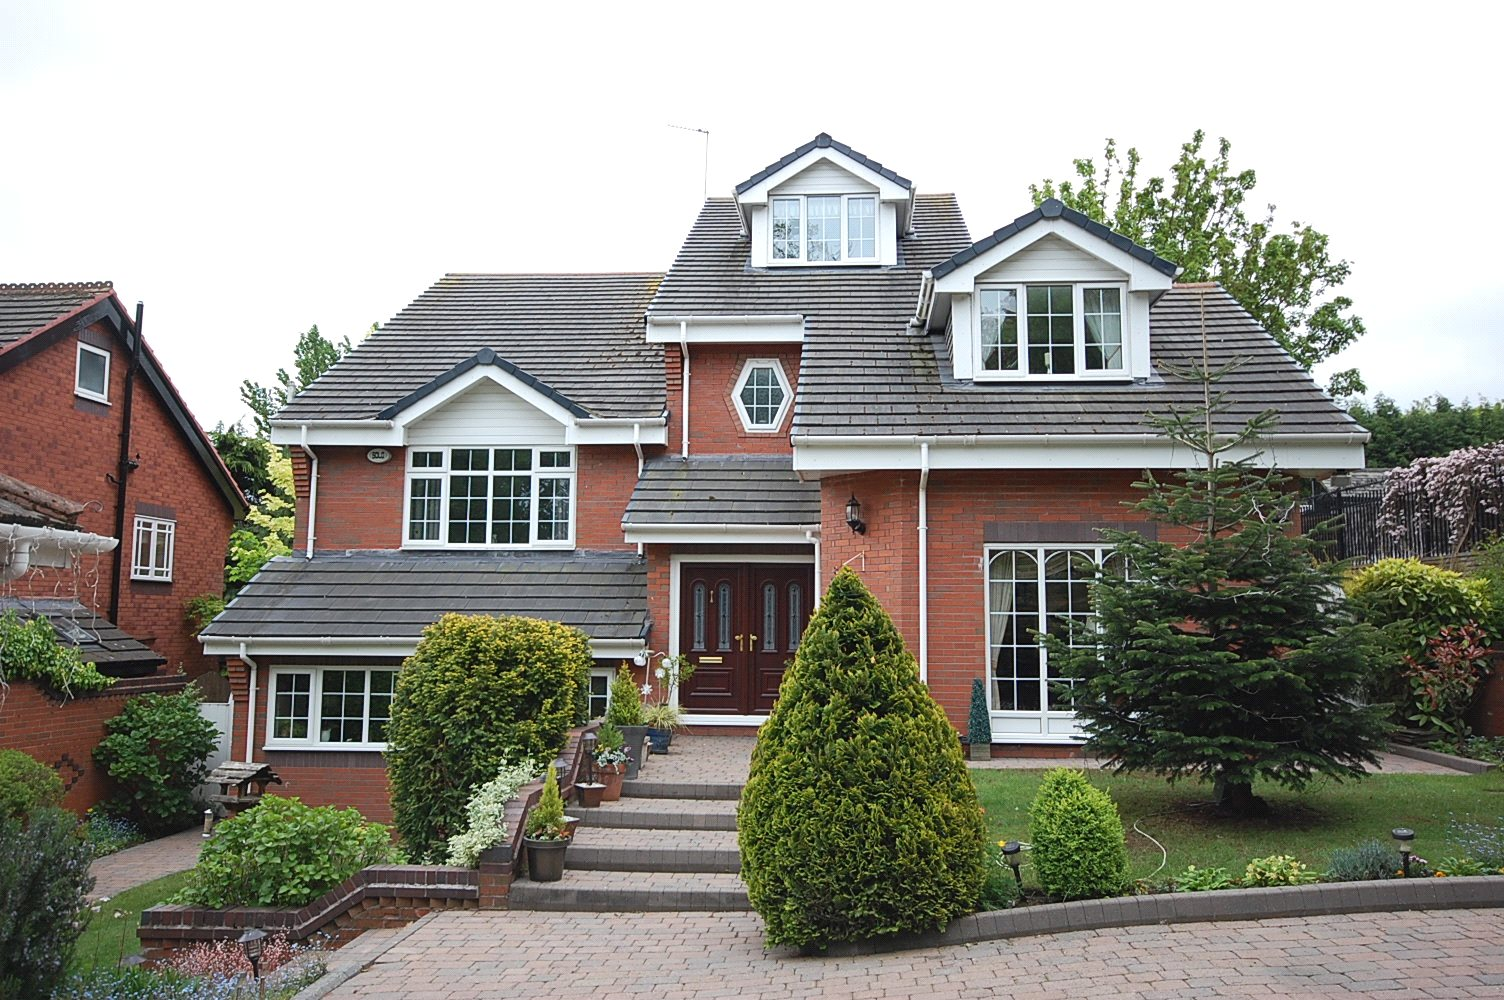 6 Bedrooms Detached House for sale in Oakfield Avenue, Gateacre, Liverpool, L25